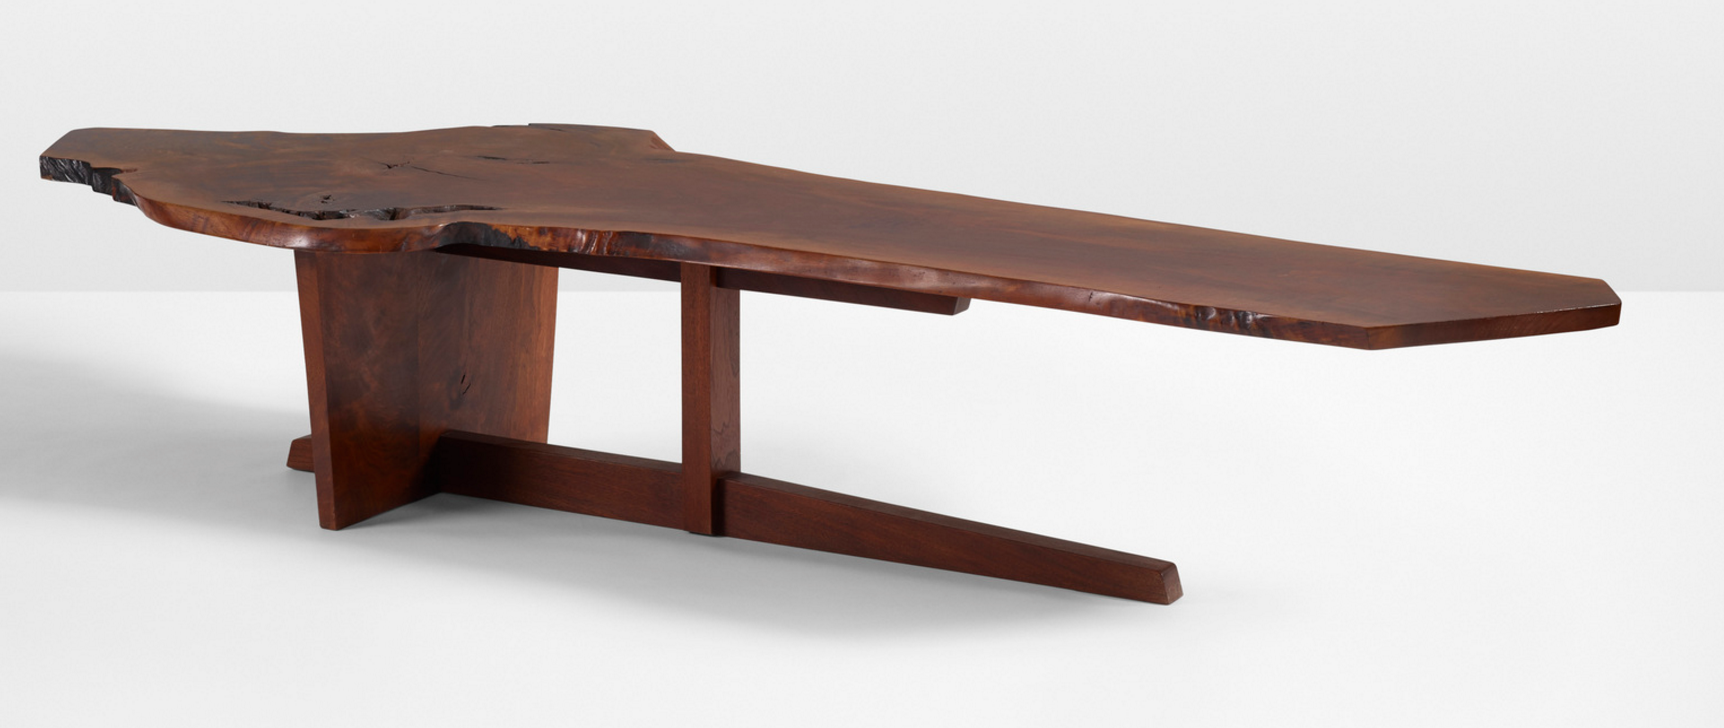 GEORGE NAKASHIMA Important Minguren II coffee table USA, 1973 American black walnut 92½ w x 32 d x 18 h in (235 x 81 x 46 cm) estimate: $120,000–180,000